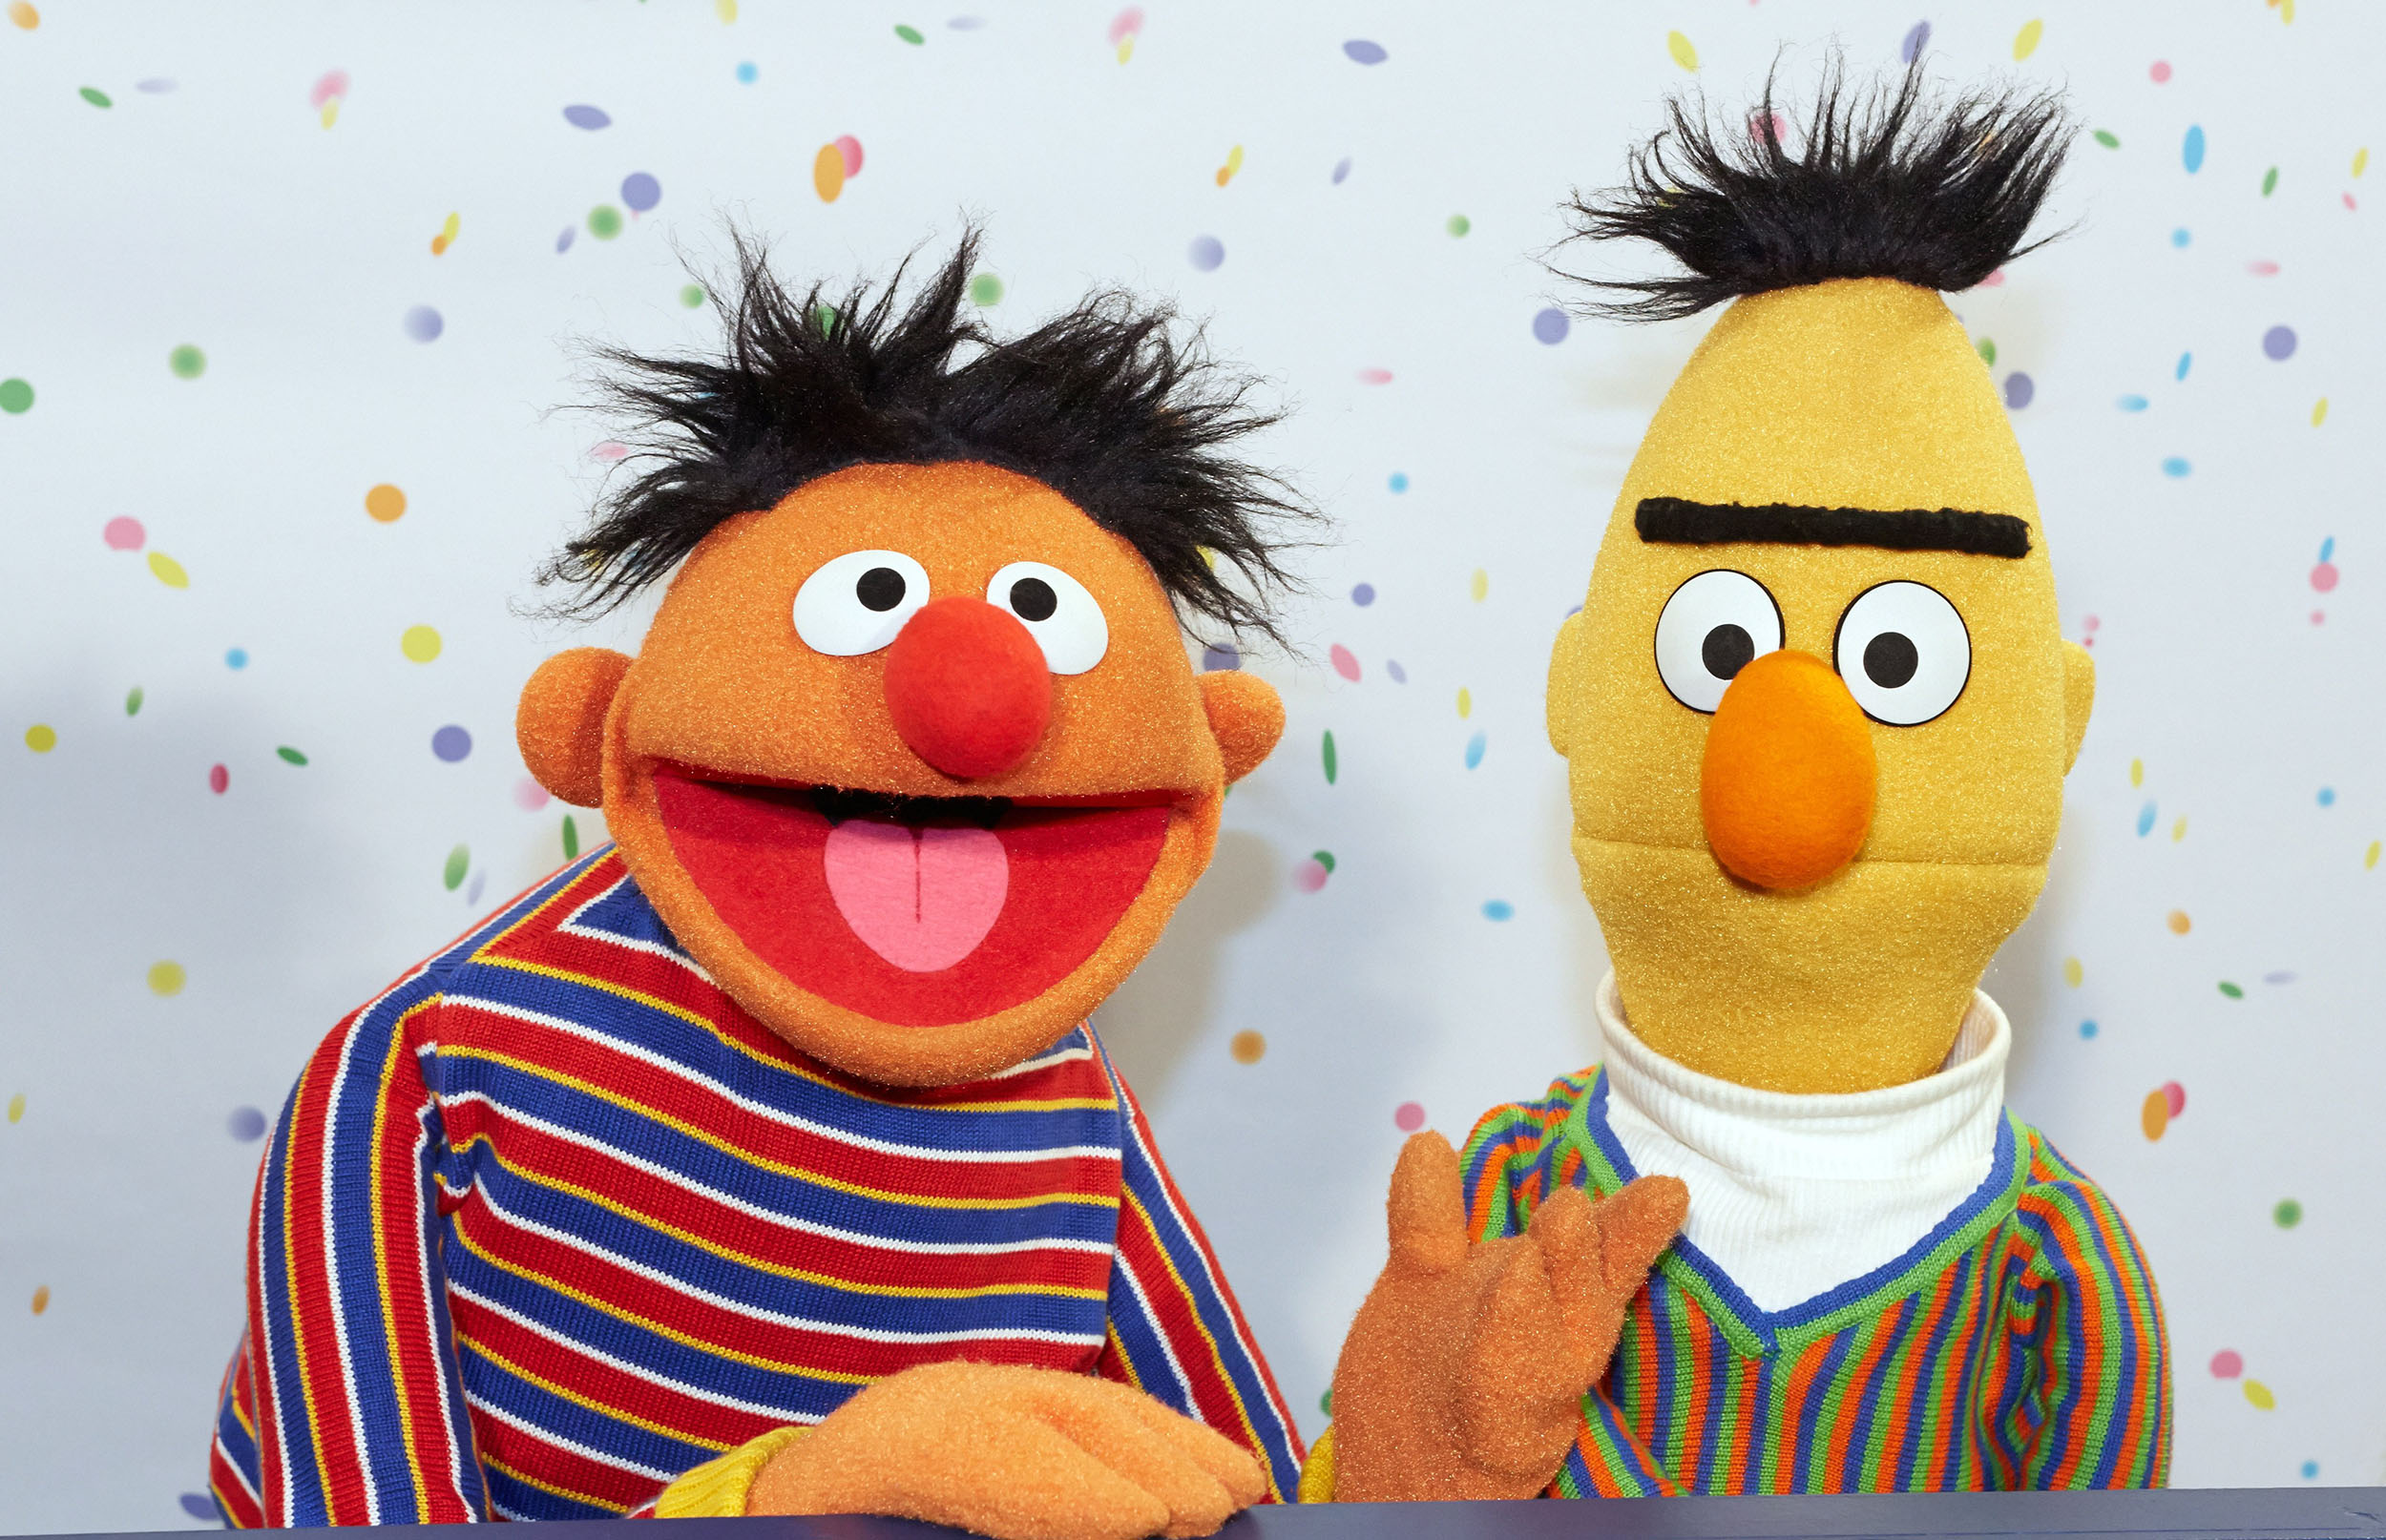 Frank Oz weighs in on 'Sesame Street' writer saying Bert and Ernie ...